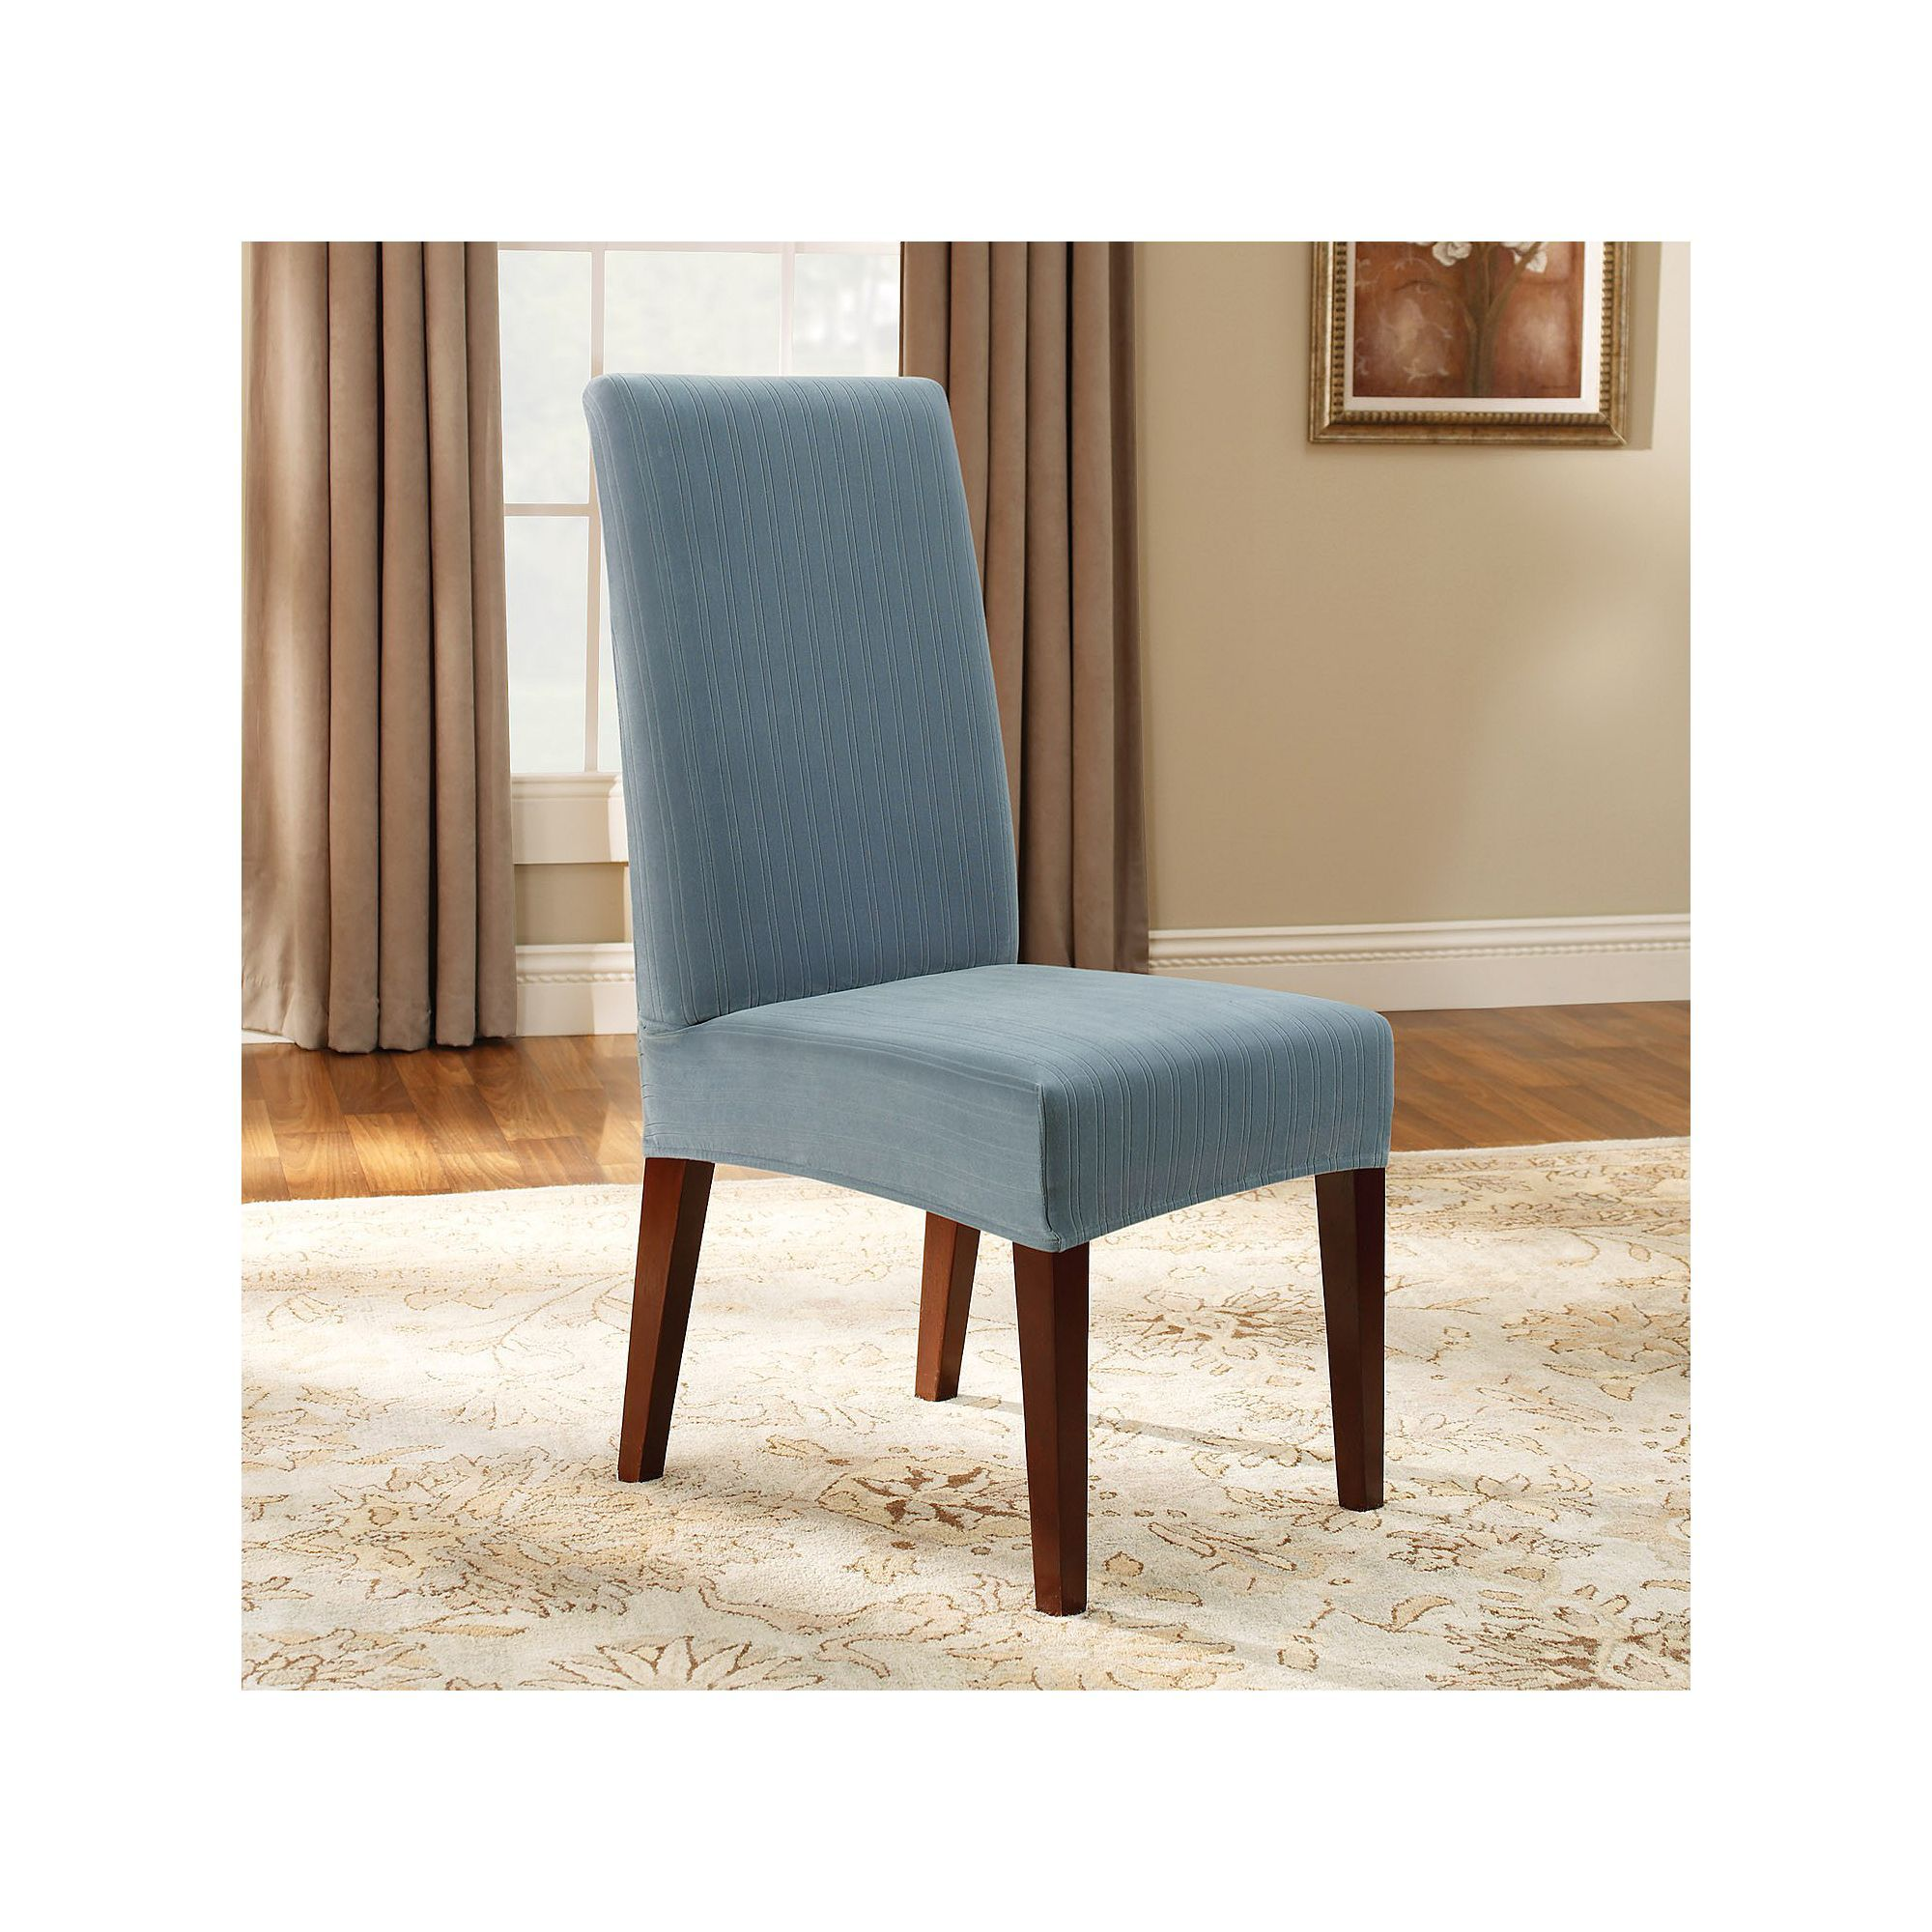 Sure Fit Pin Striped Dining Chair Slipcover CoversDining Room